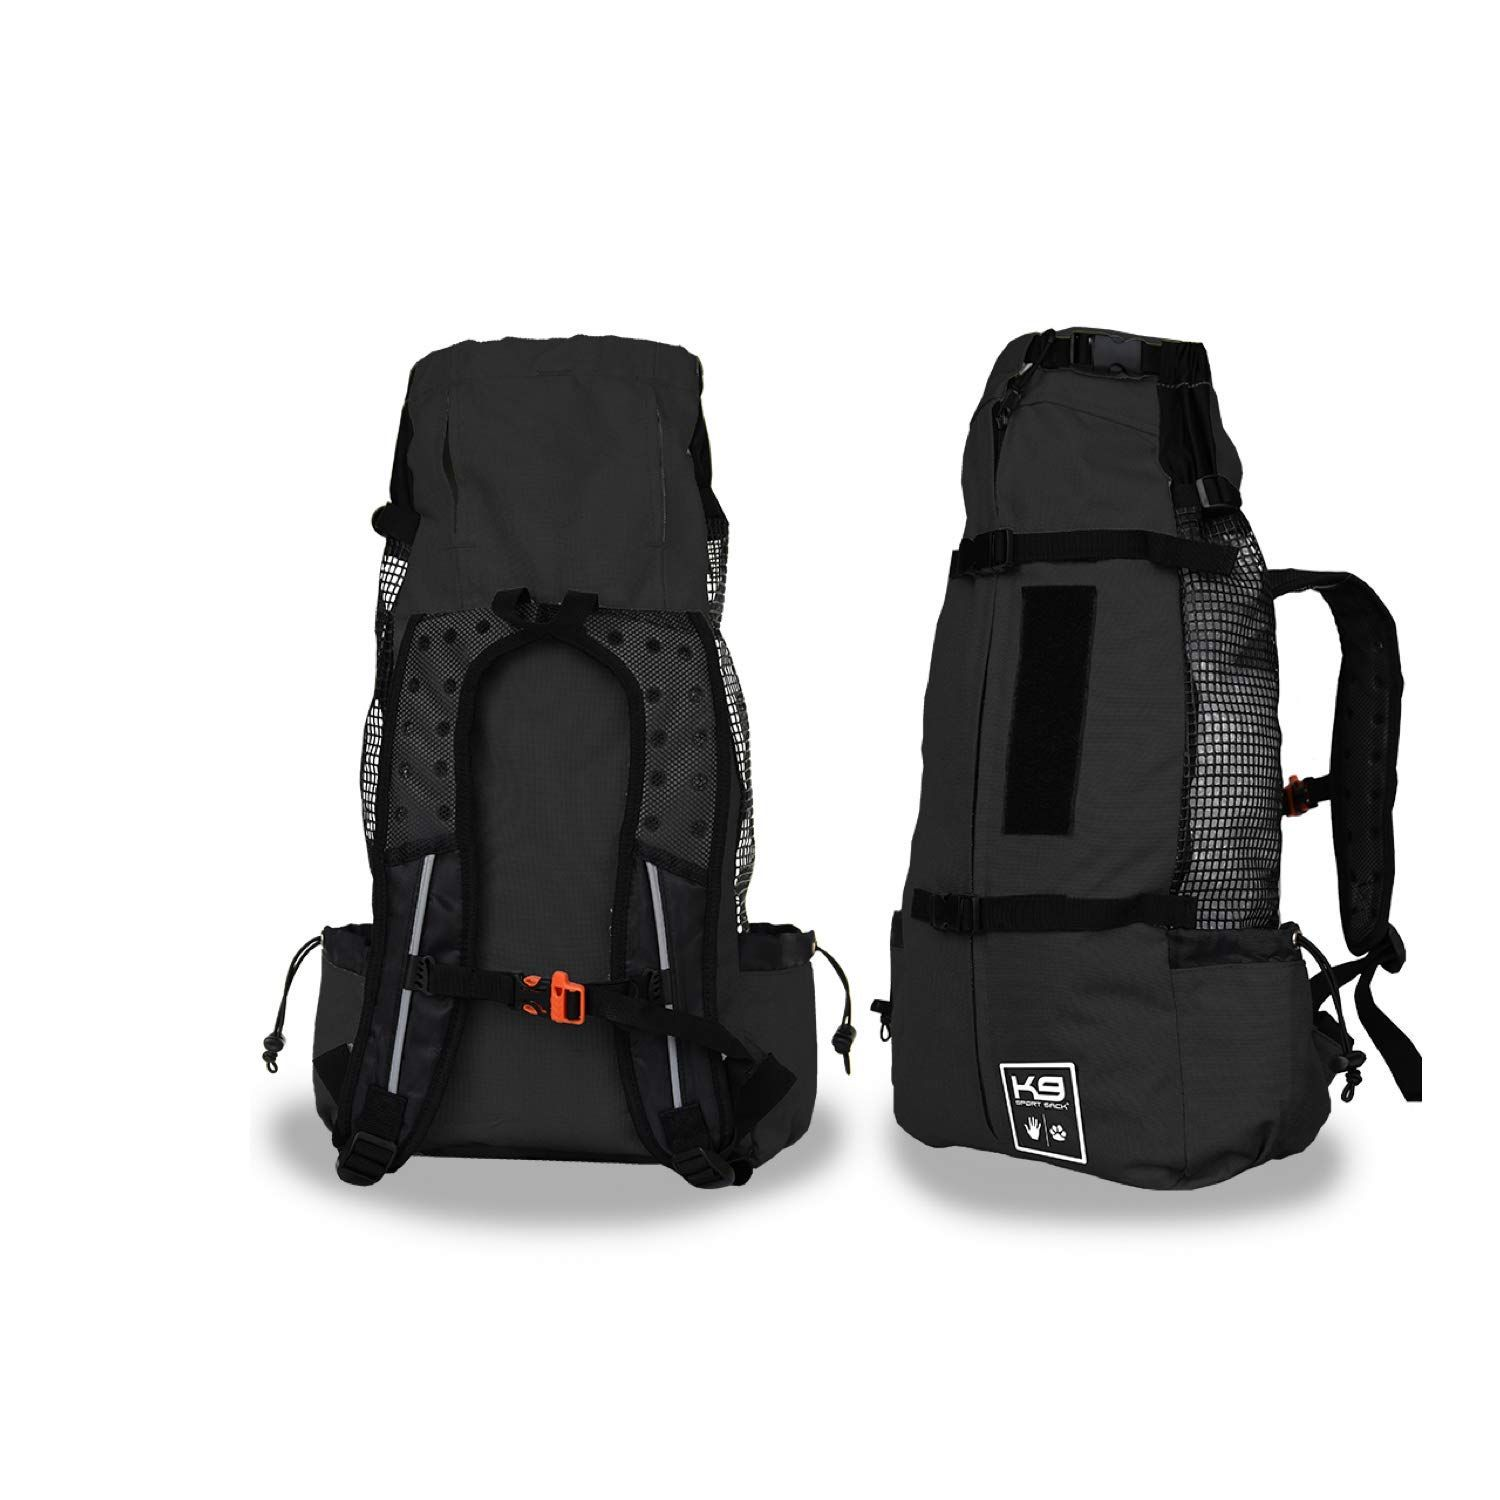 Pet backpack for dog's puppies cat (With images) Dog